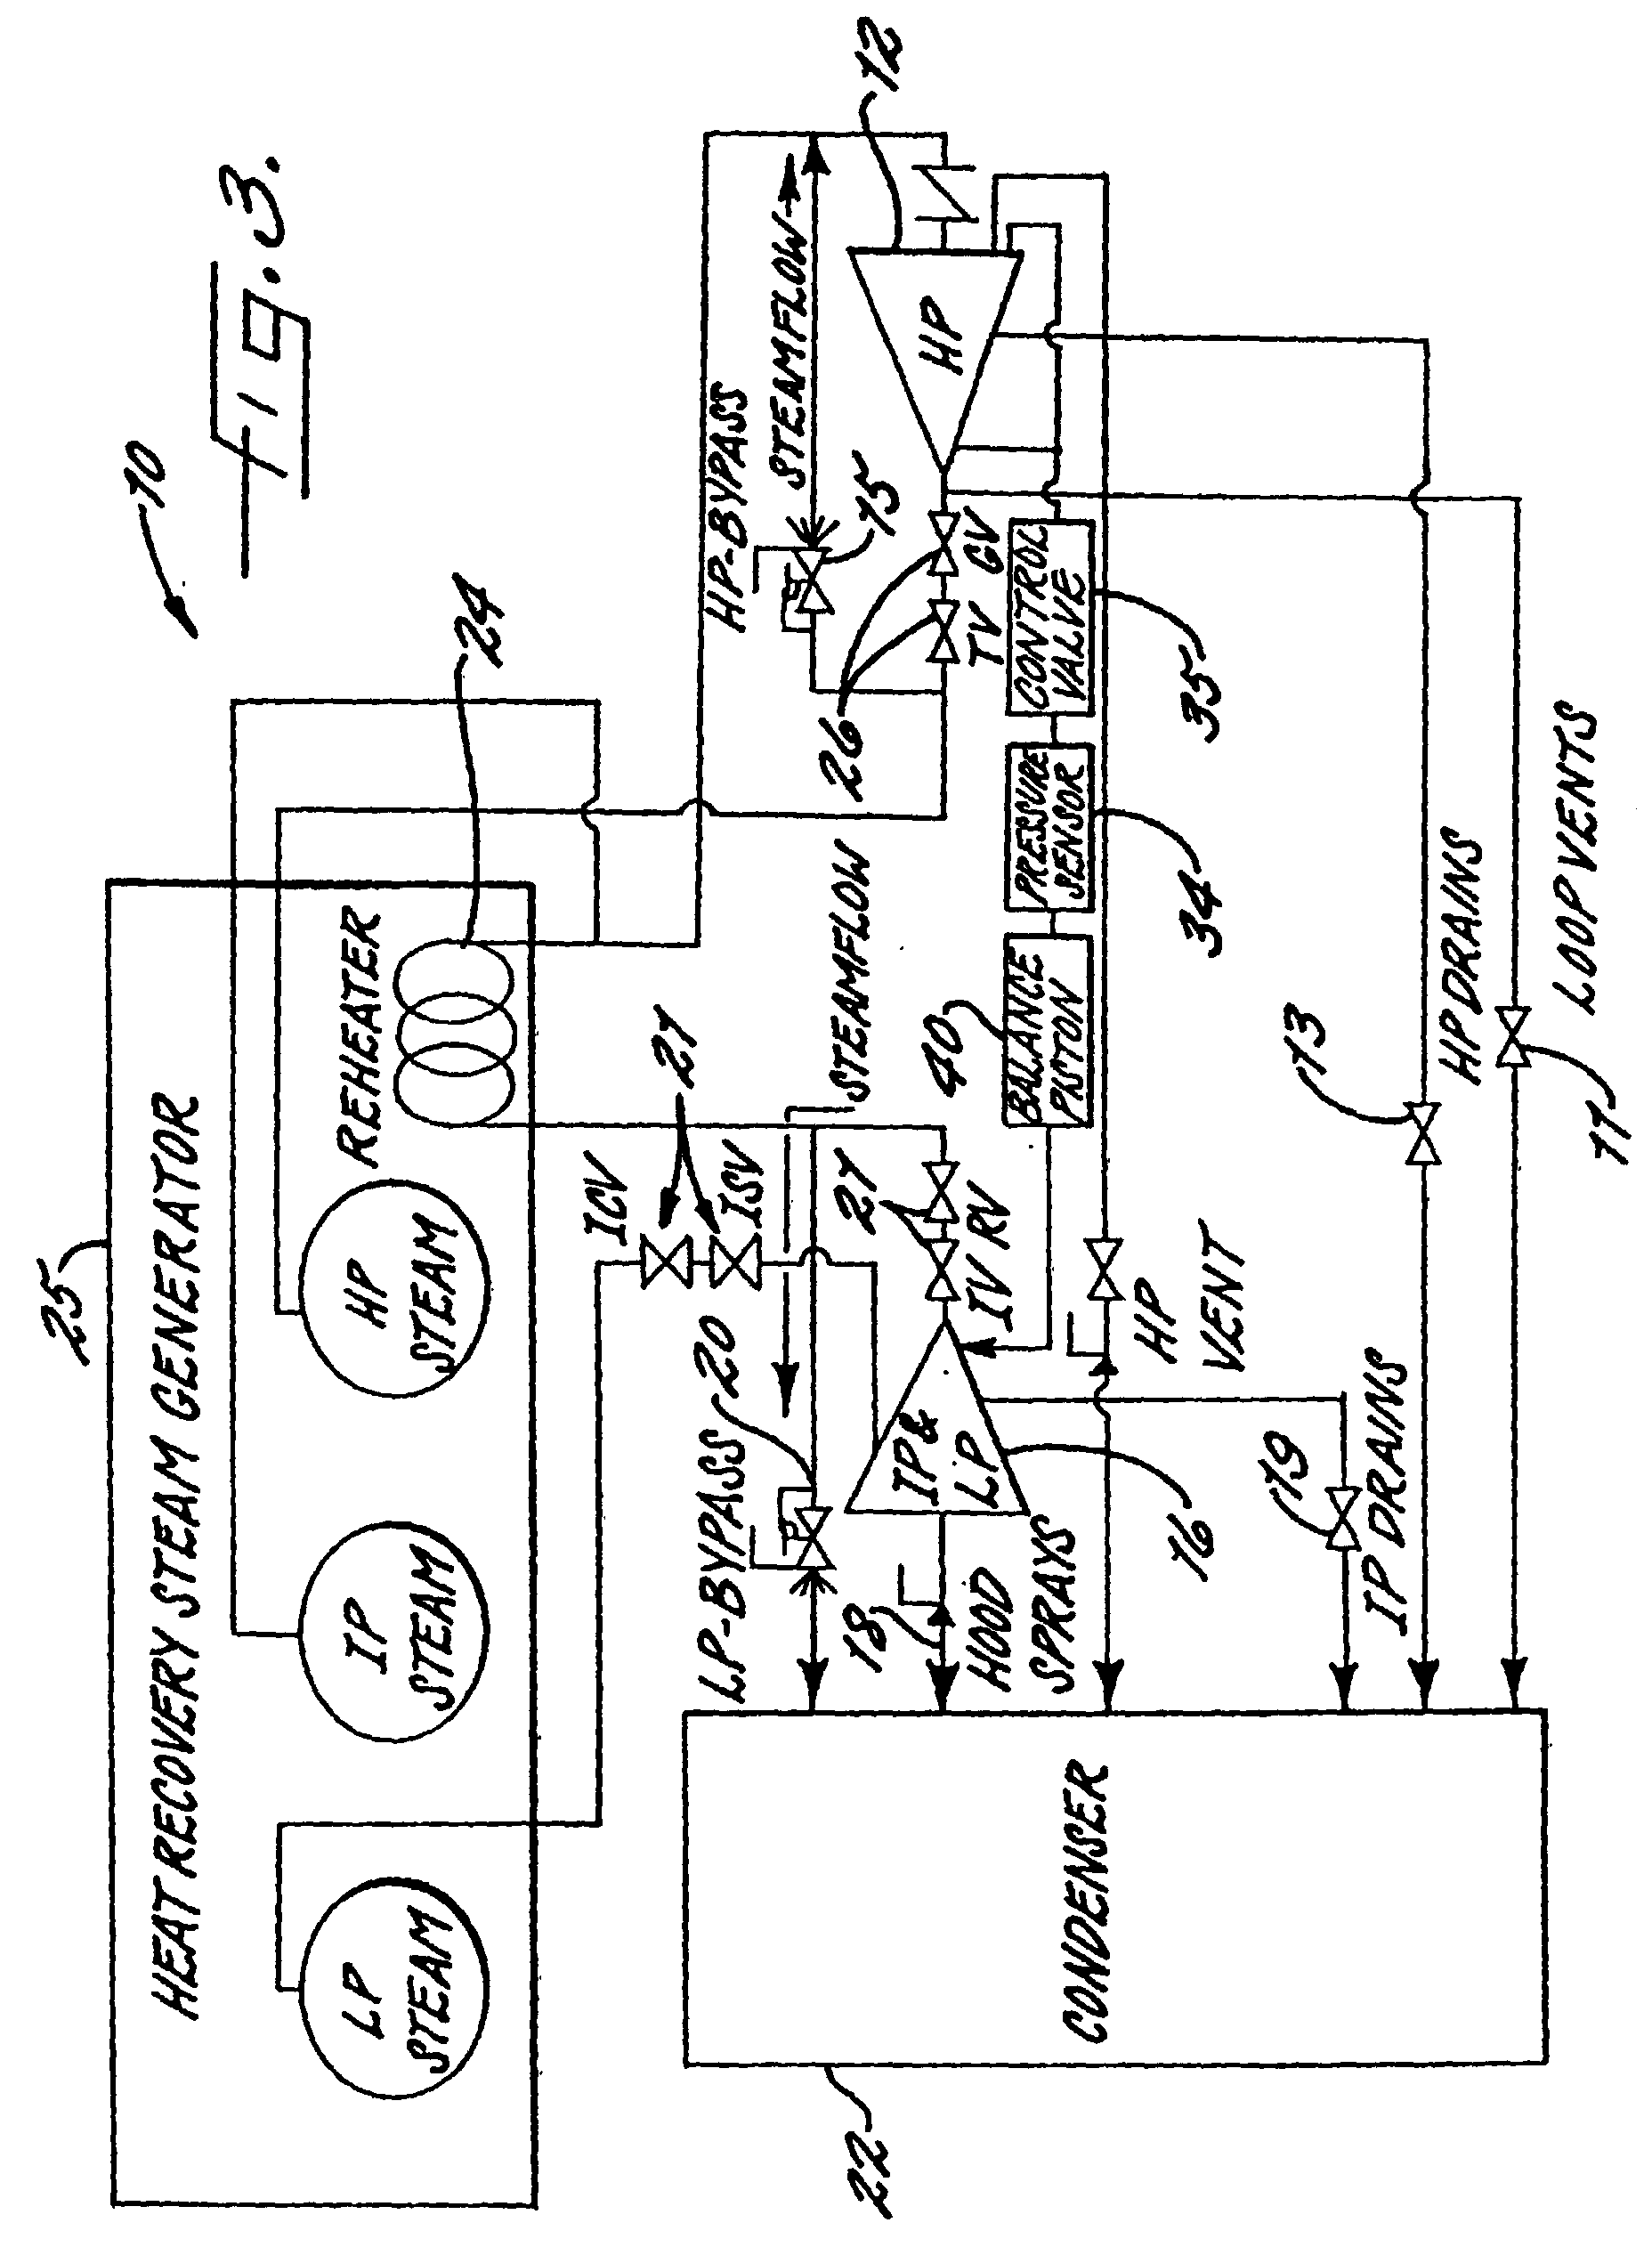 Patent EP A2 Steam cooling system for balance piston of a